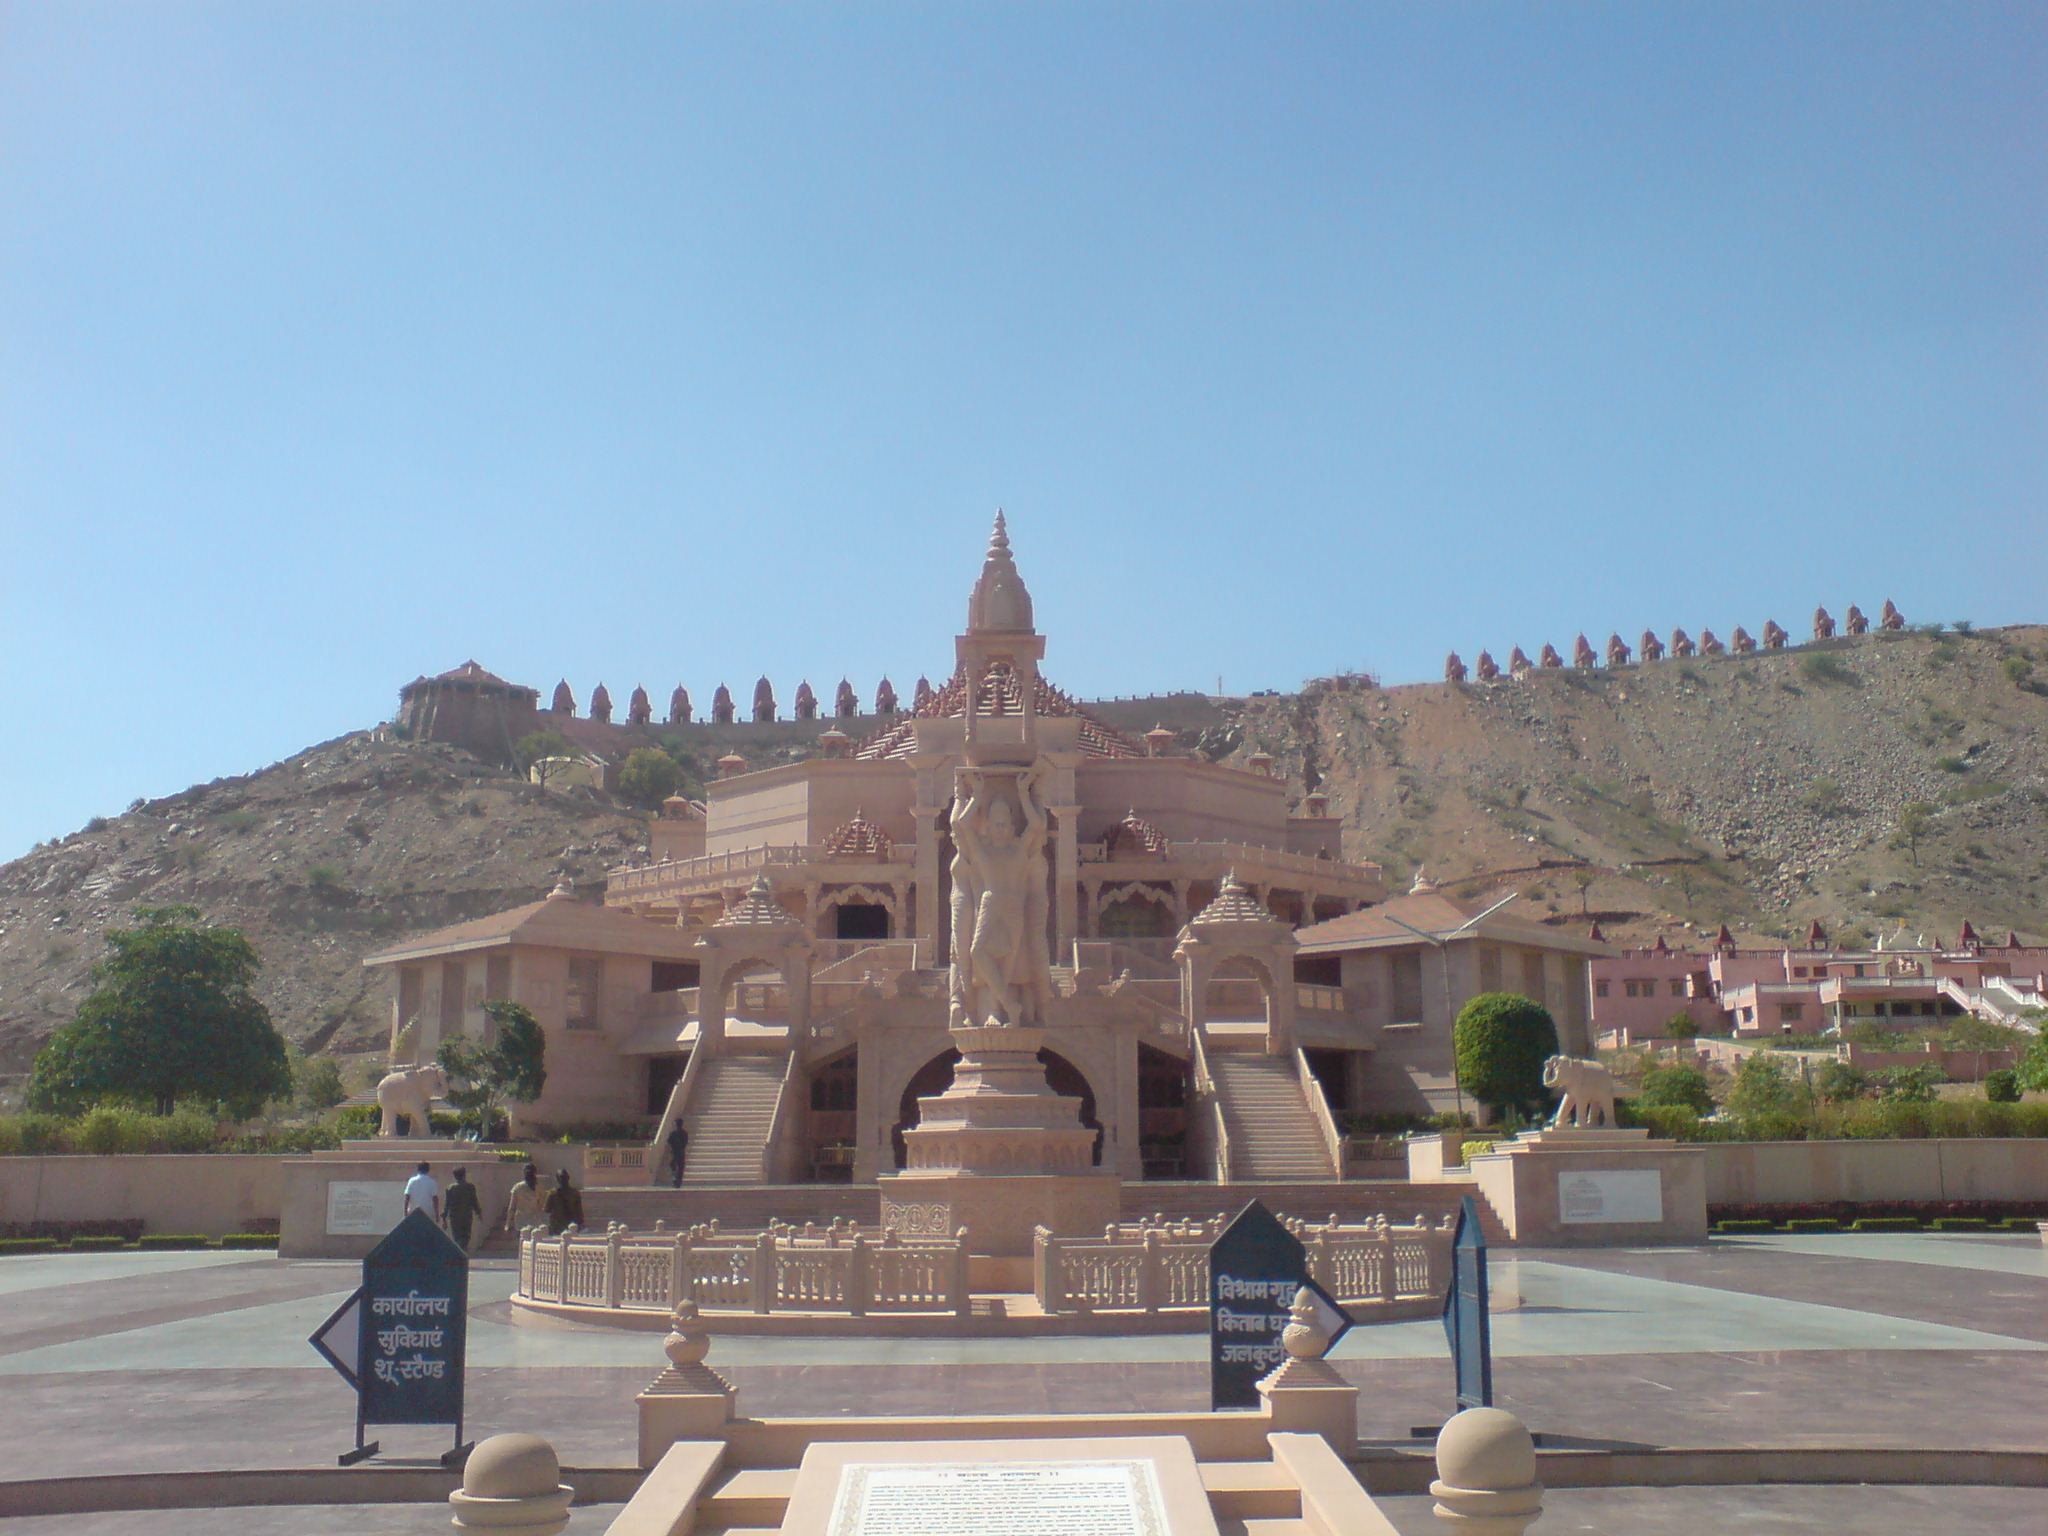 One of the attractions in Kishangarh